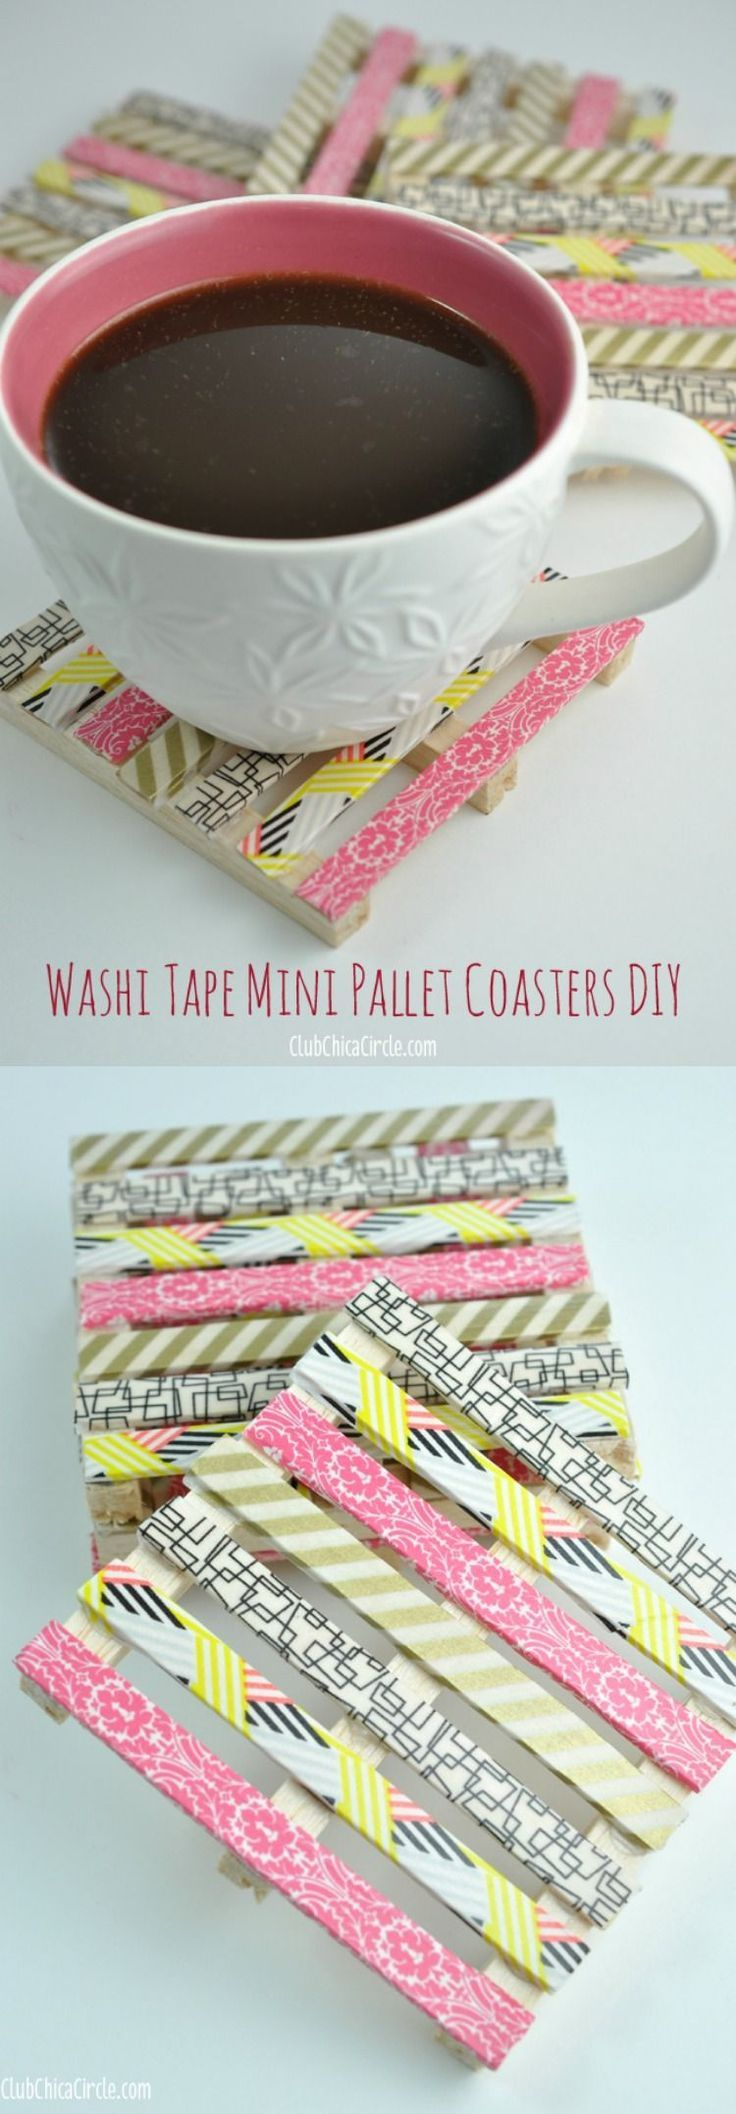 DIY Mini Pallet Coasters with Washi Tape Tape crafts